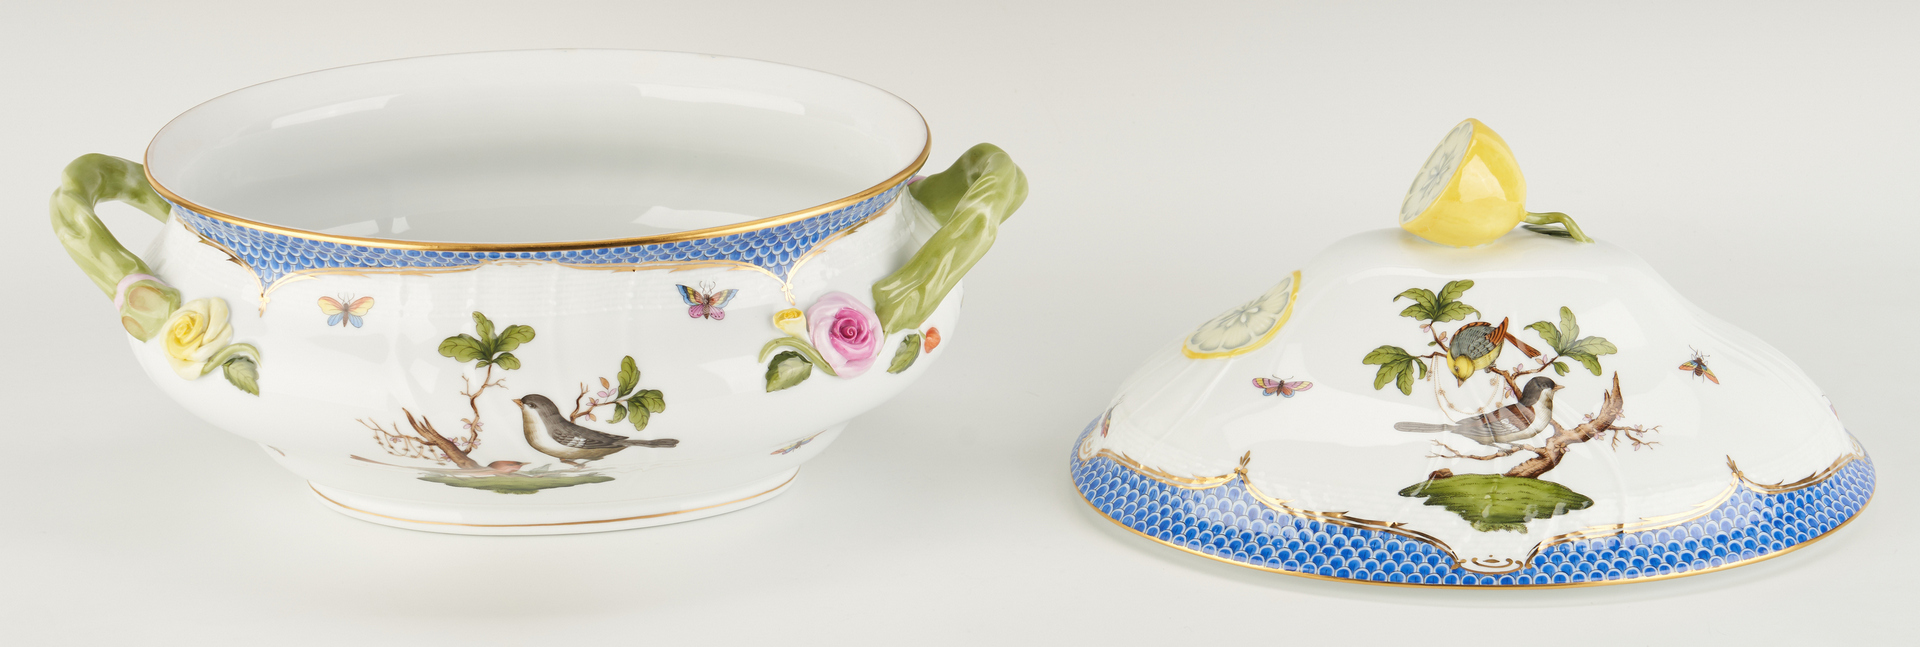 Lot 312: 12 Pcs. Herend Rothschild Blue Bird, incl. Tureen and Placecard Holders